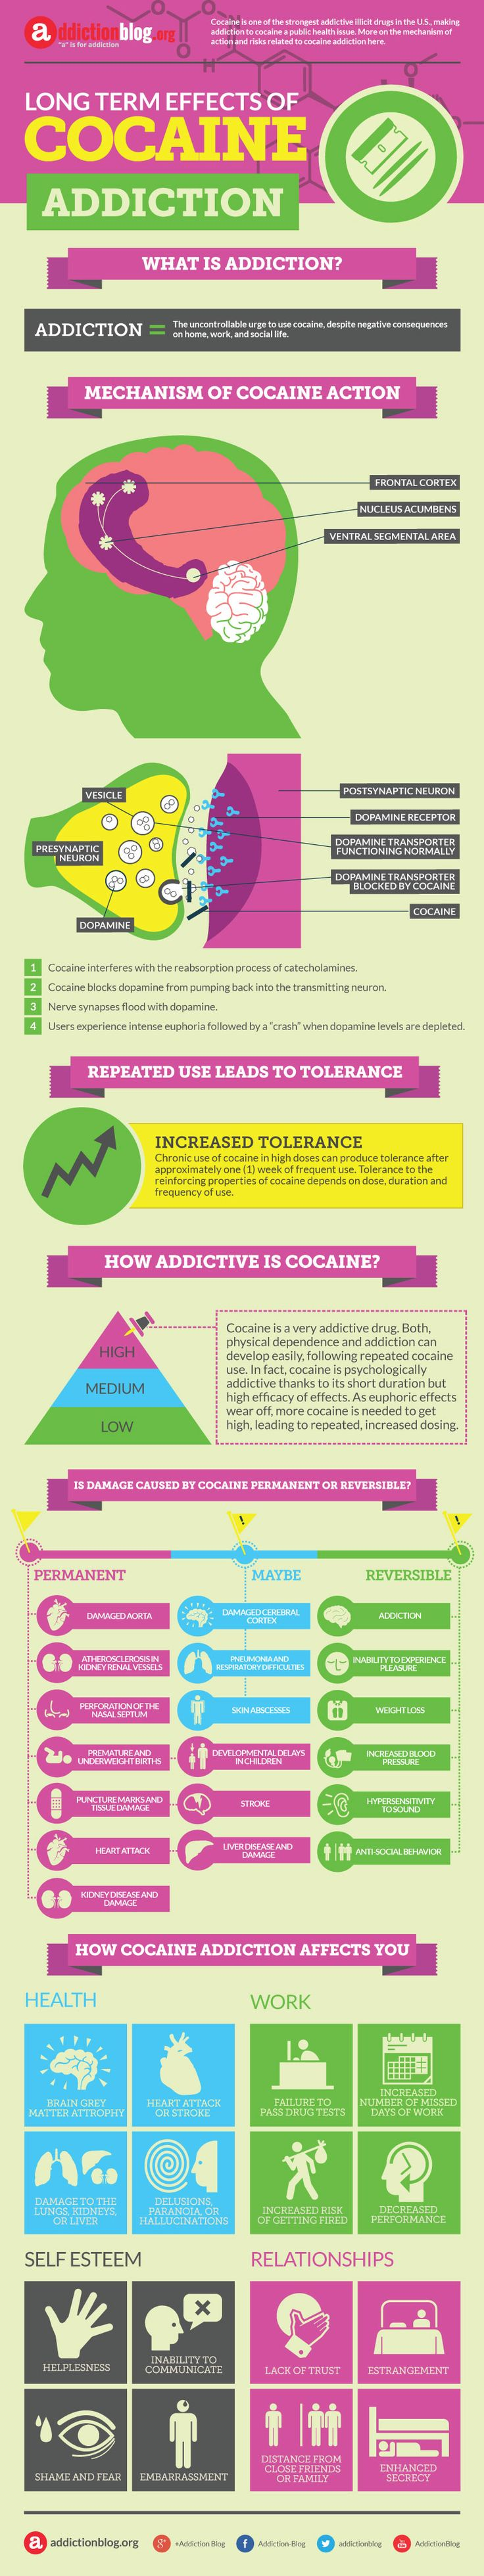 the long term effects of addictions